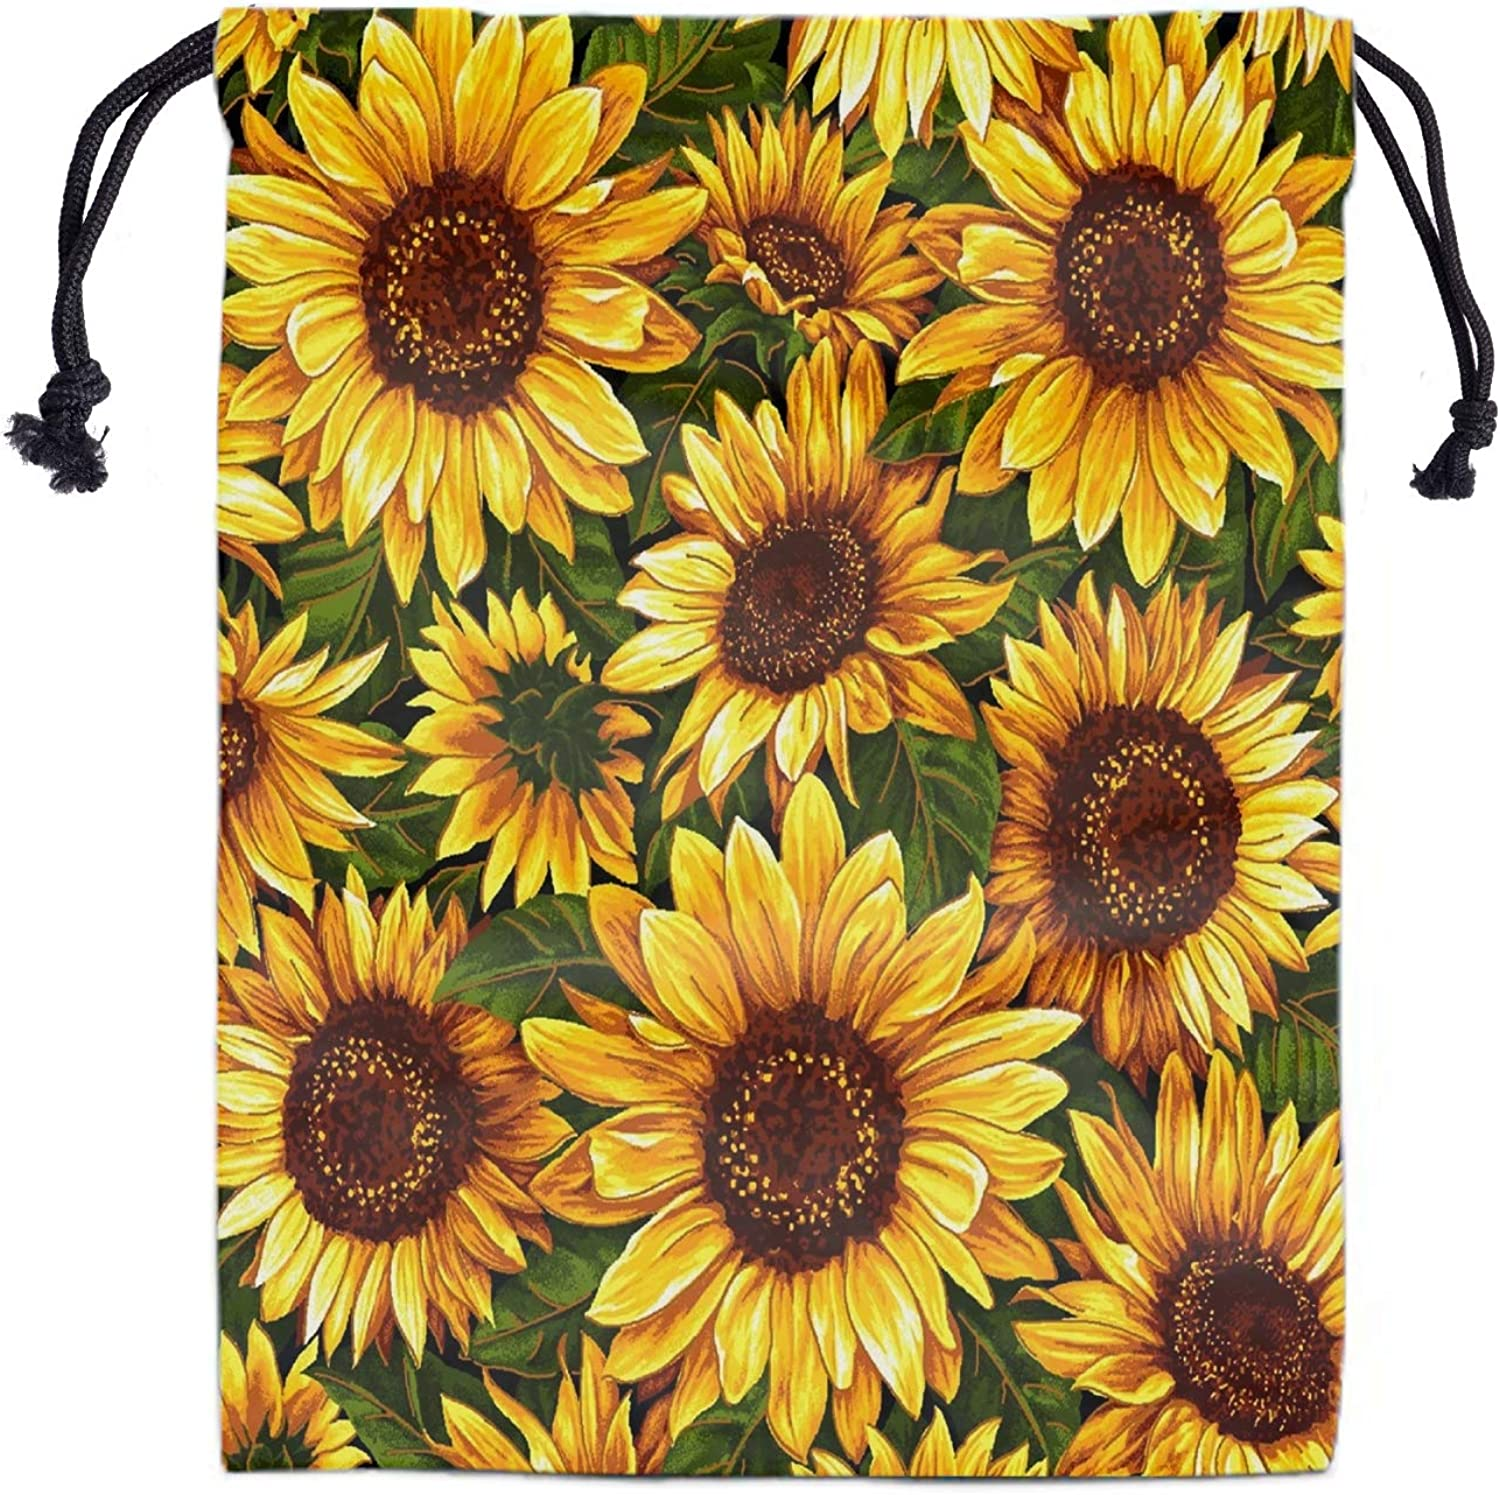 Sunflowers Drawstring Storage Bag Gym - Girls Grip Bags for Gymnastics Lightweight Dance Drawstring Bags Pouch Shoe Bags Laundry Pouches for Travel Adjustable Waterproof Polyester Towel Bag for Yoga